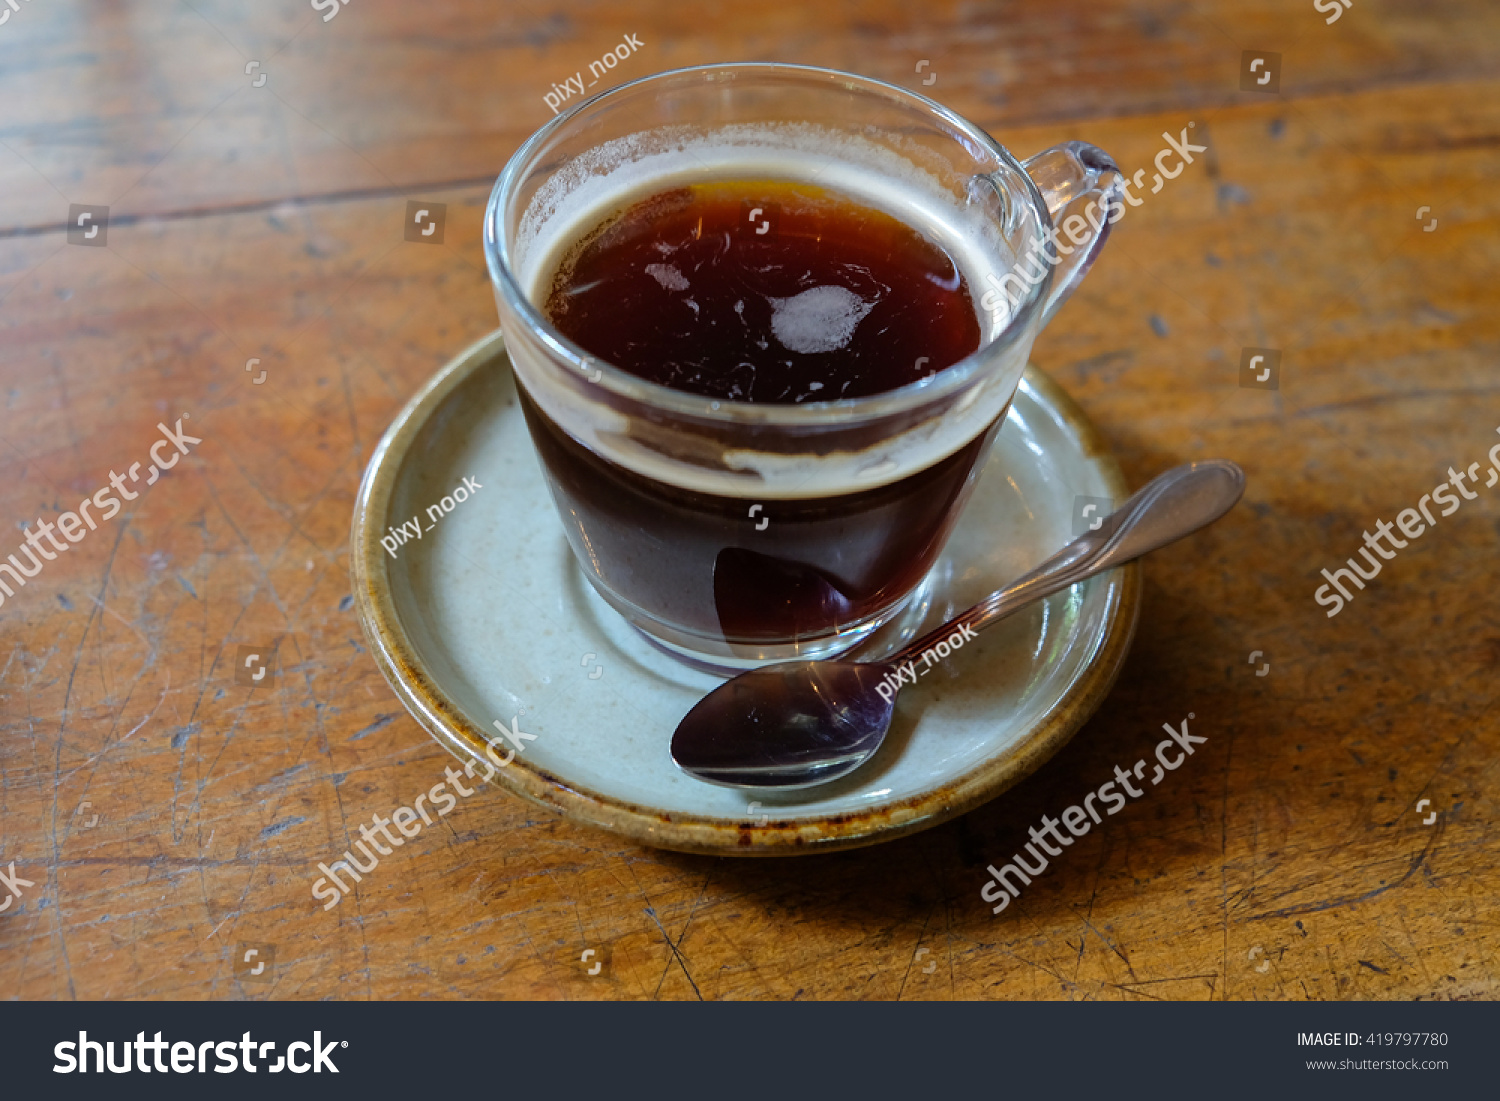 Americano Coffee English Hot Americano Coffee On Wooden Table Stock Photo 419797780